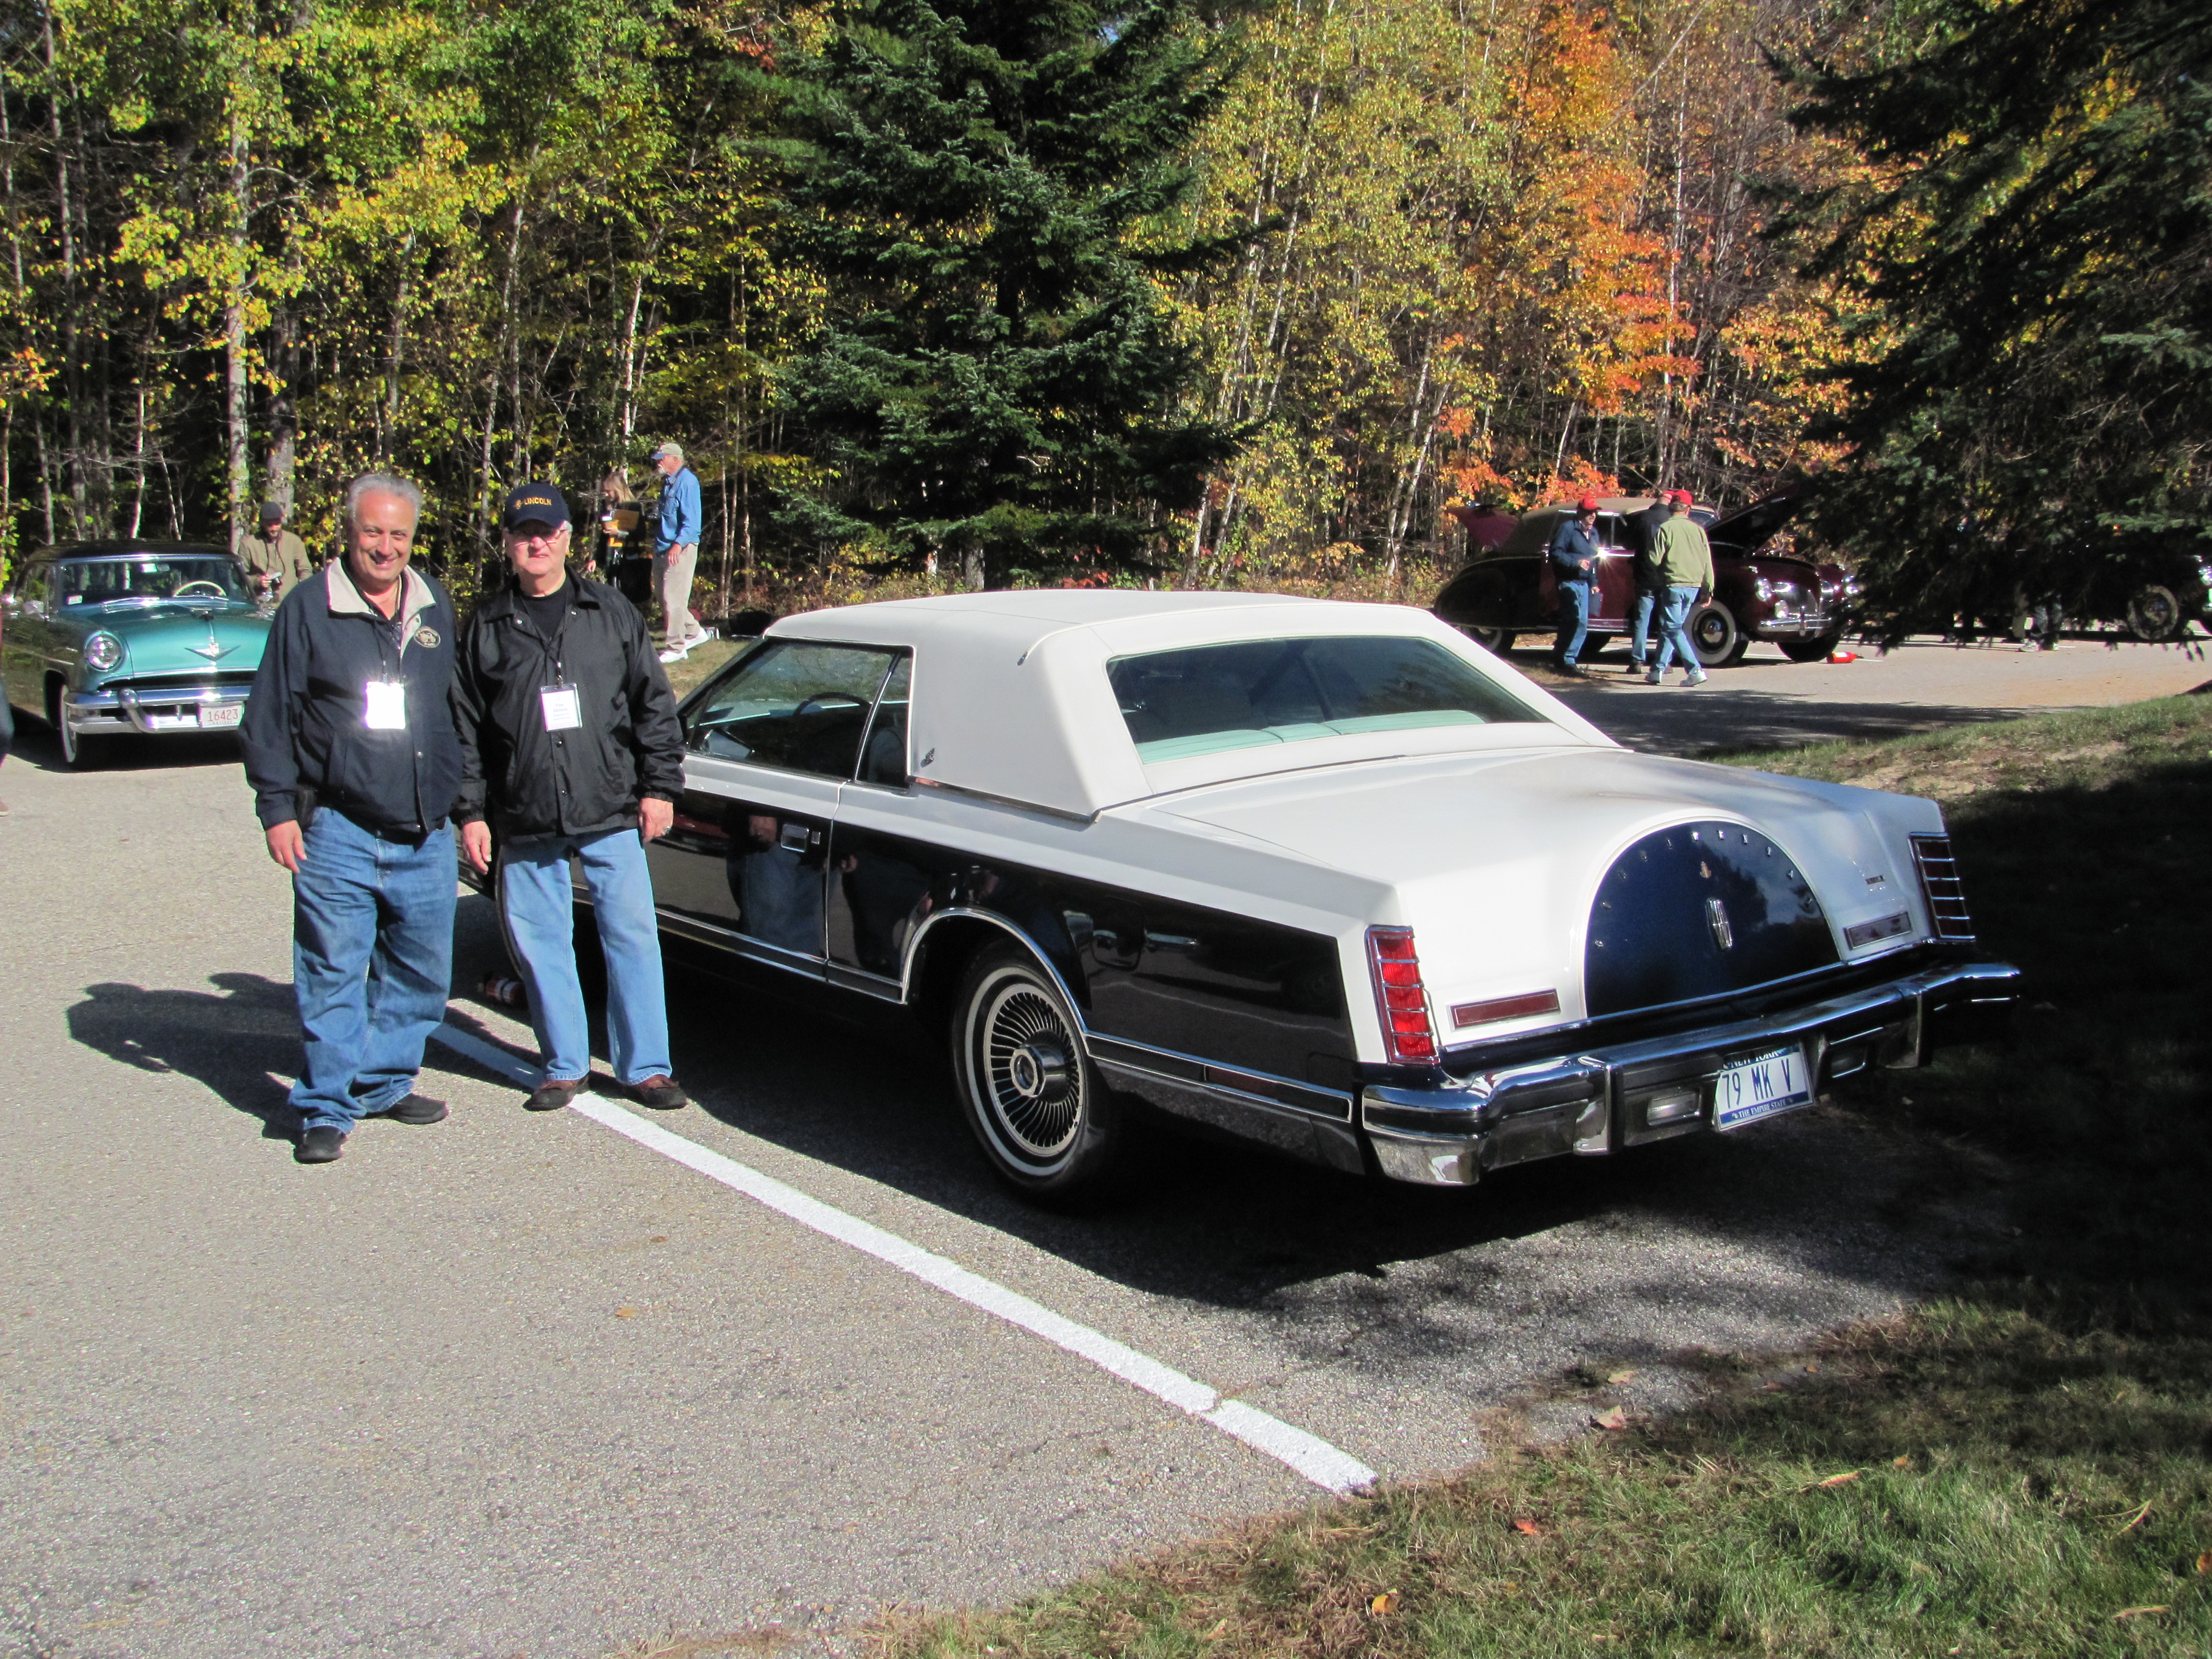 Classics In Traffic 1985 Cadillac Fleetwood Brougham 1989 Lincoln 79 Mark V Wiring Diagram Last Weekends Lcoc Eastern Meet Had A Carriage Roofed 1979 Mk Bill Blass As Best Of Show Original Owner And 99 Point Car Driven To The